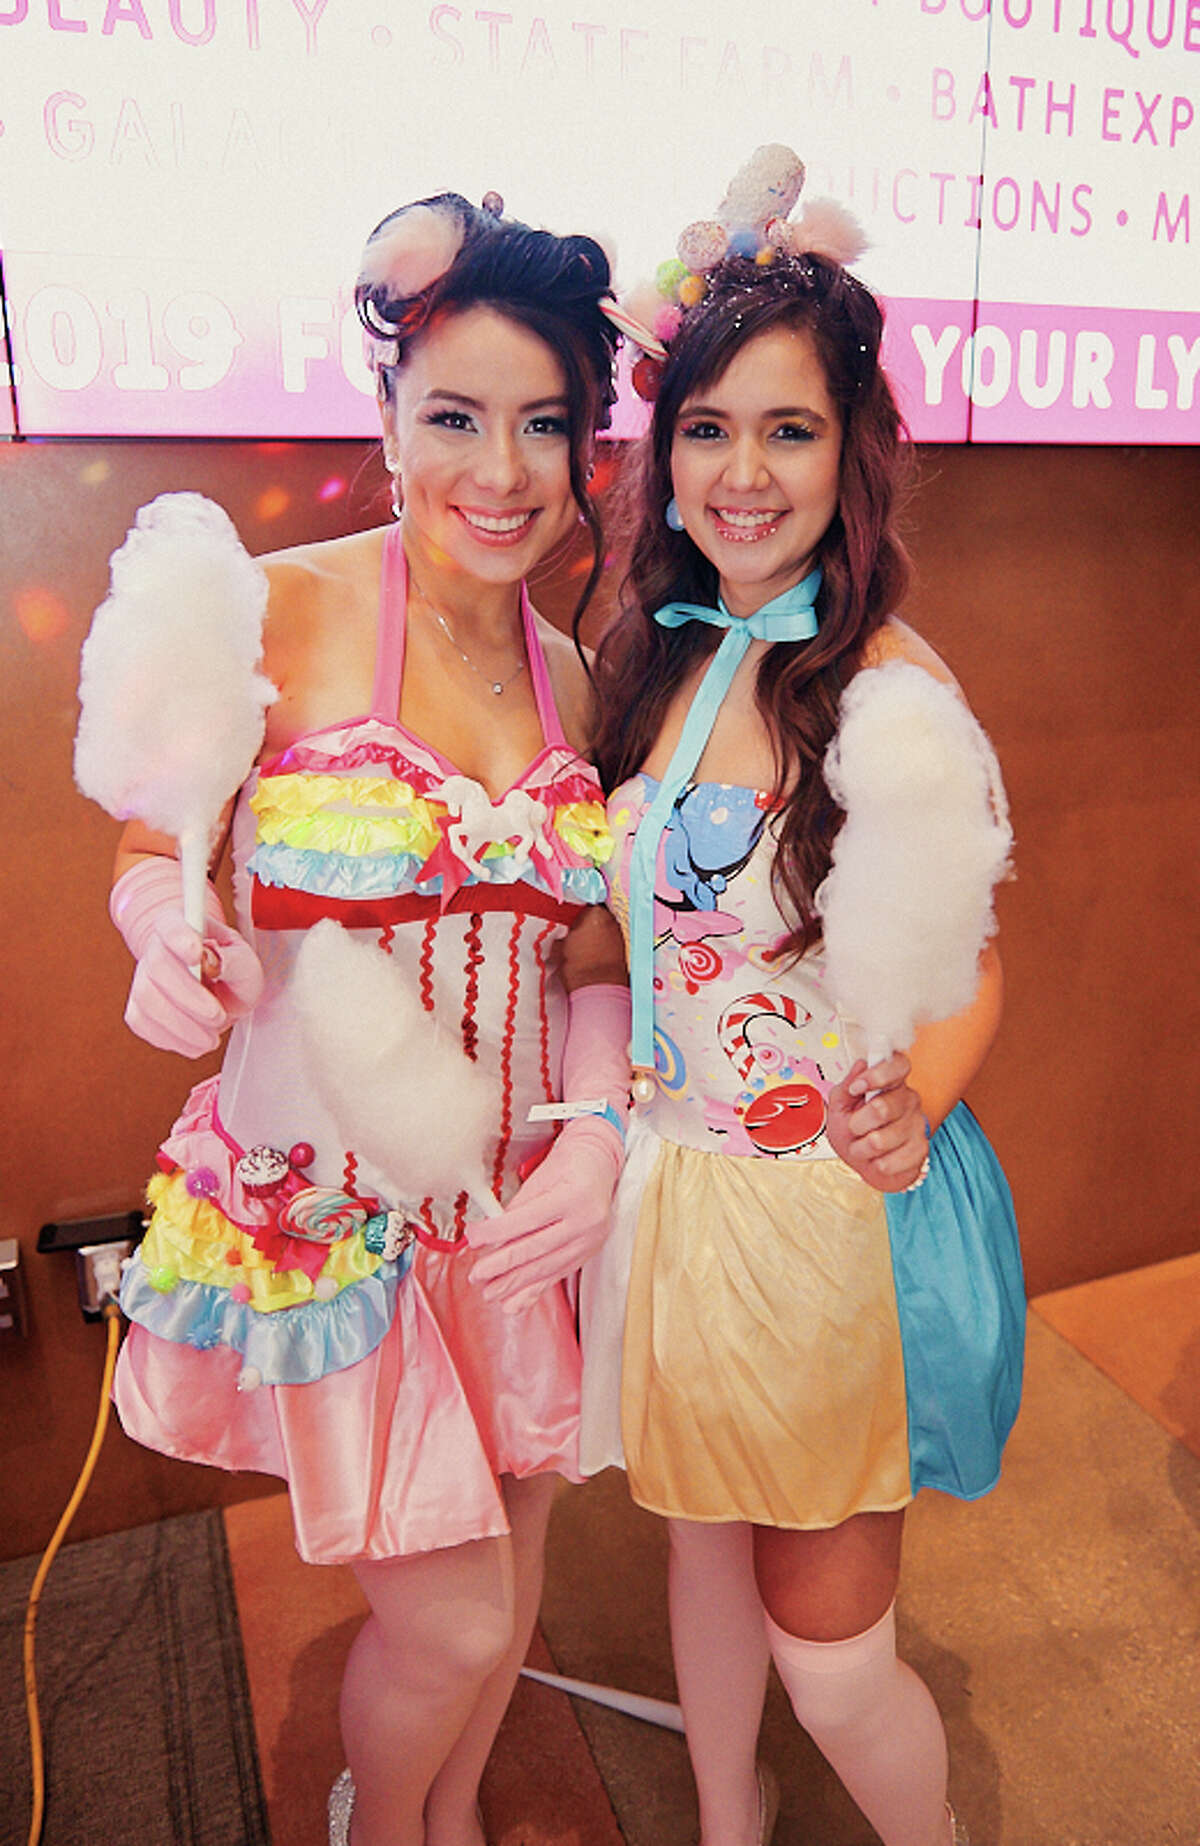 The DoSeum had their third annual Dulce: Candyland event on Friday, November 22, 2019.